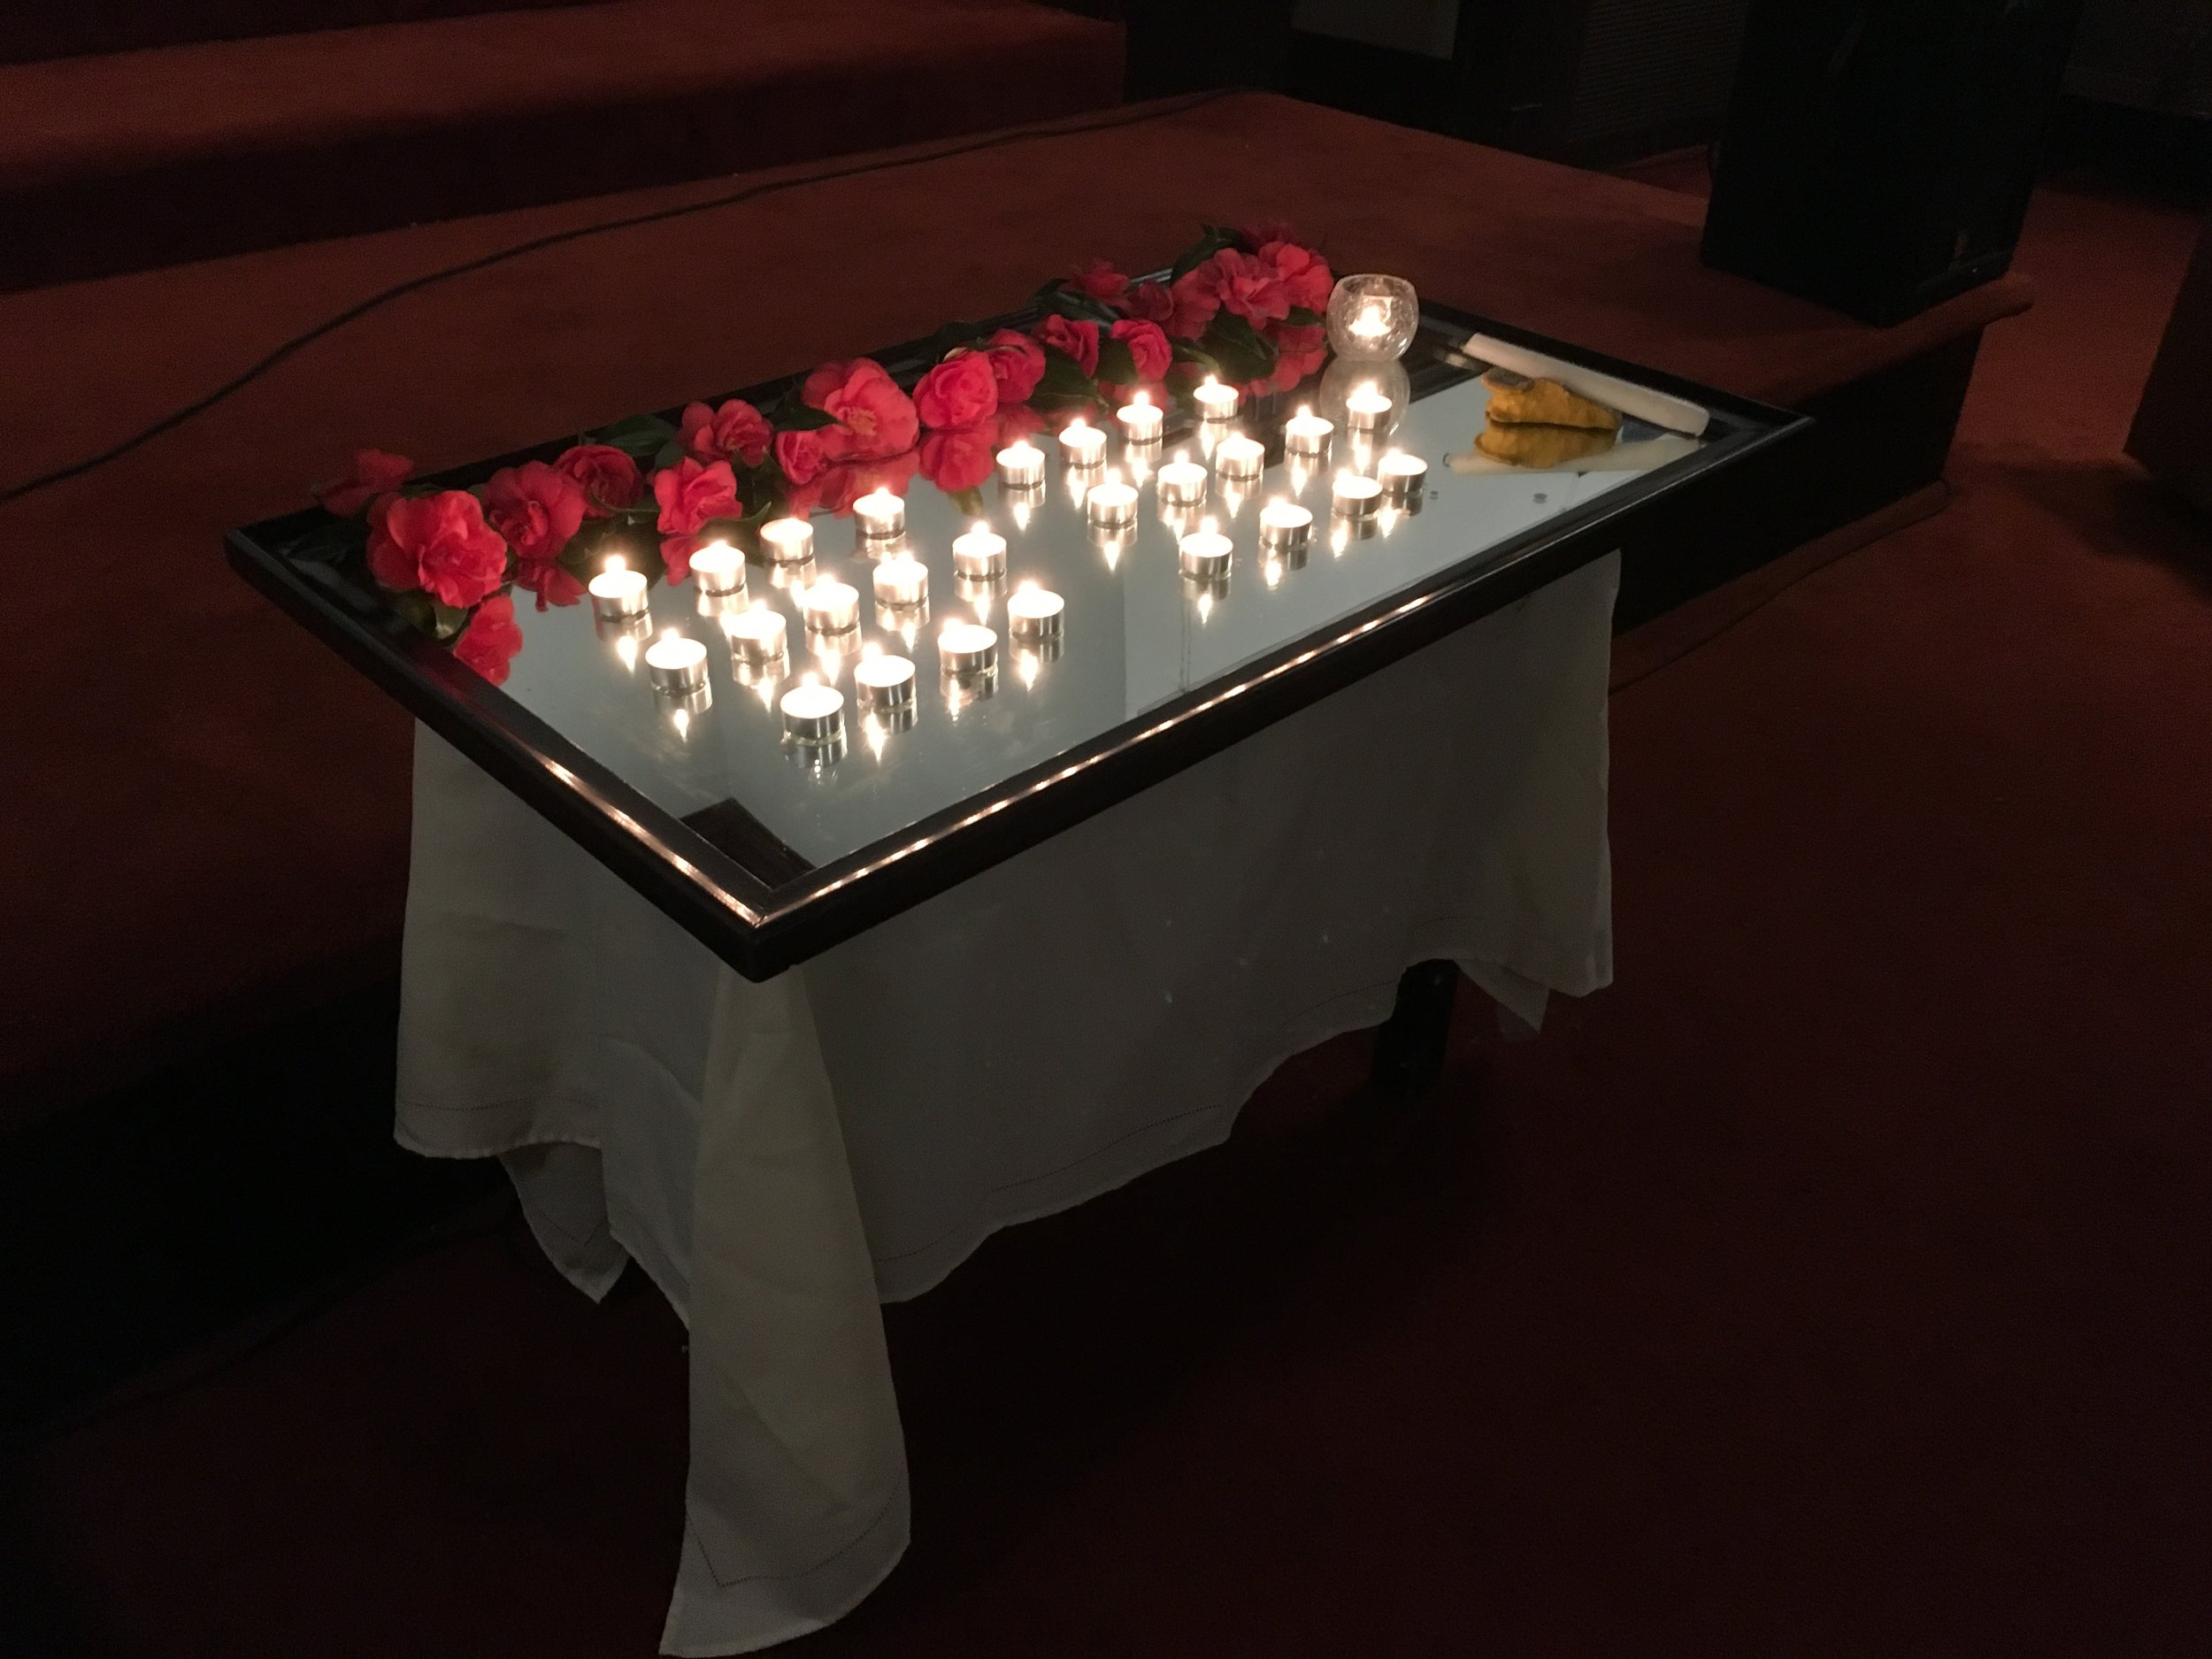 The Fellowship hosted a vigil remembering the victims of Sandy Hook, five years ago Dec. 14.